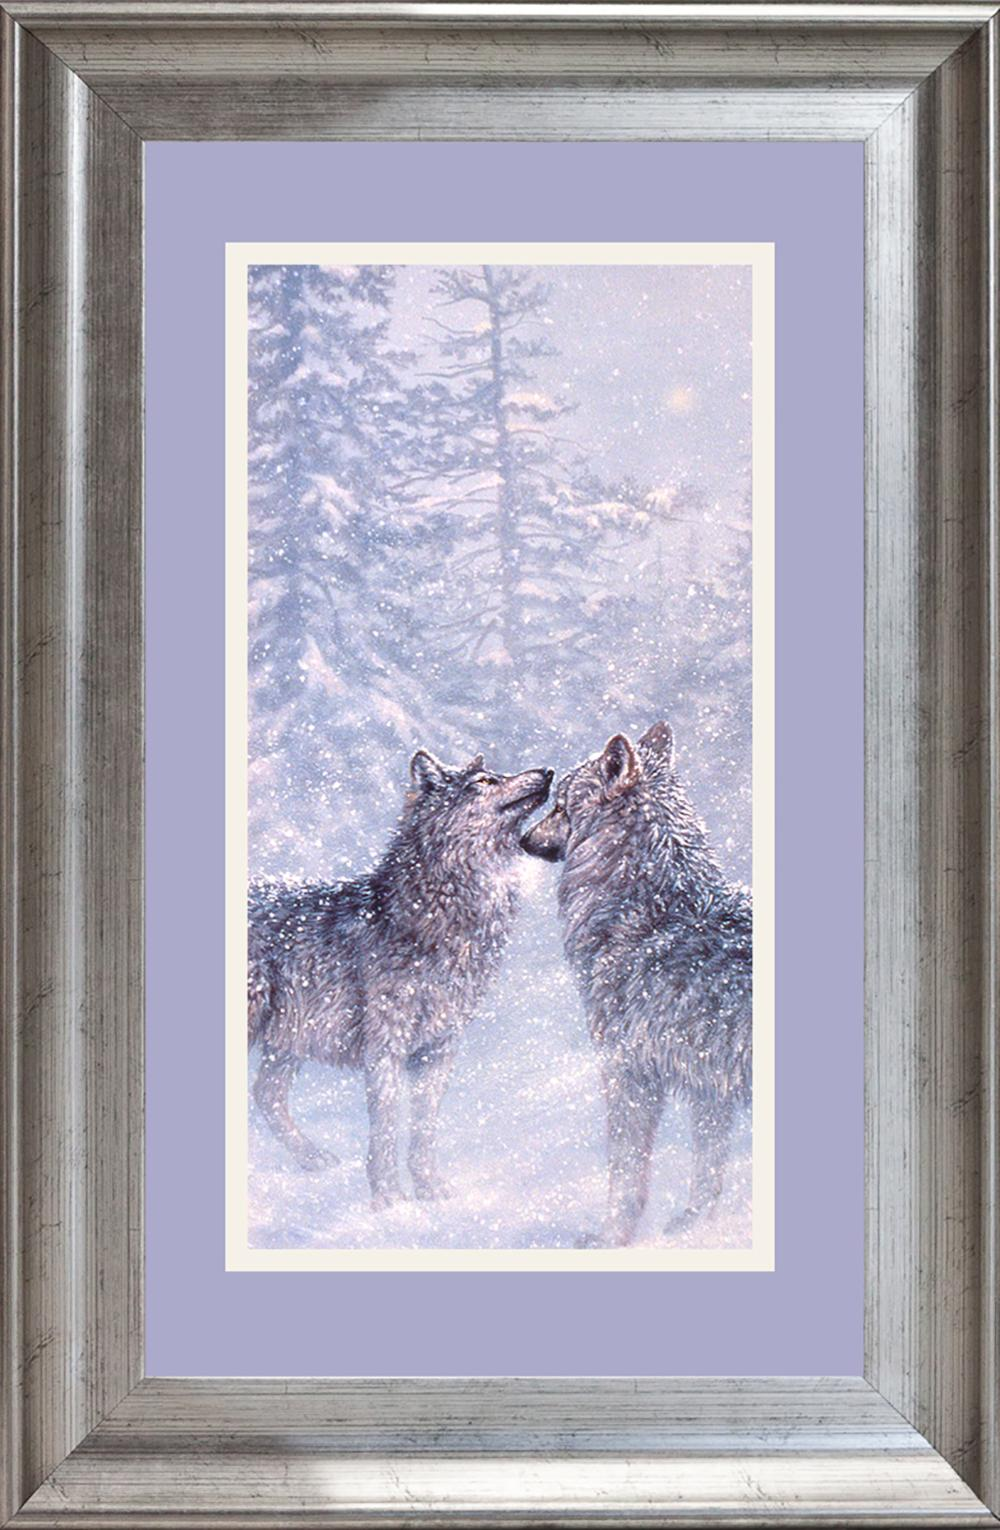 Lot 4155: Robert Copple Chance Reunion Limited Edition Lithograph